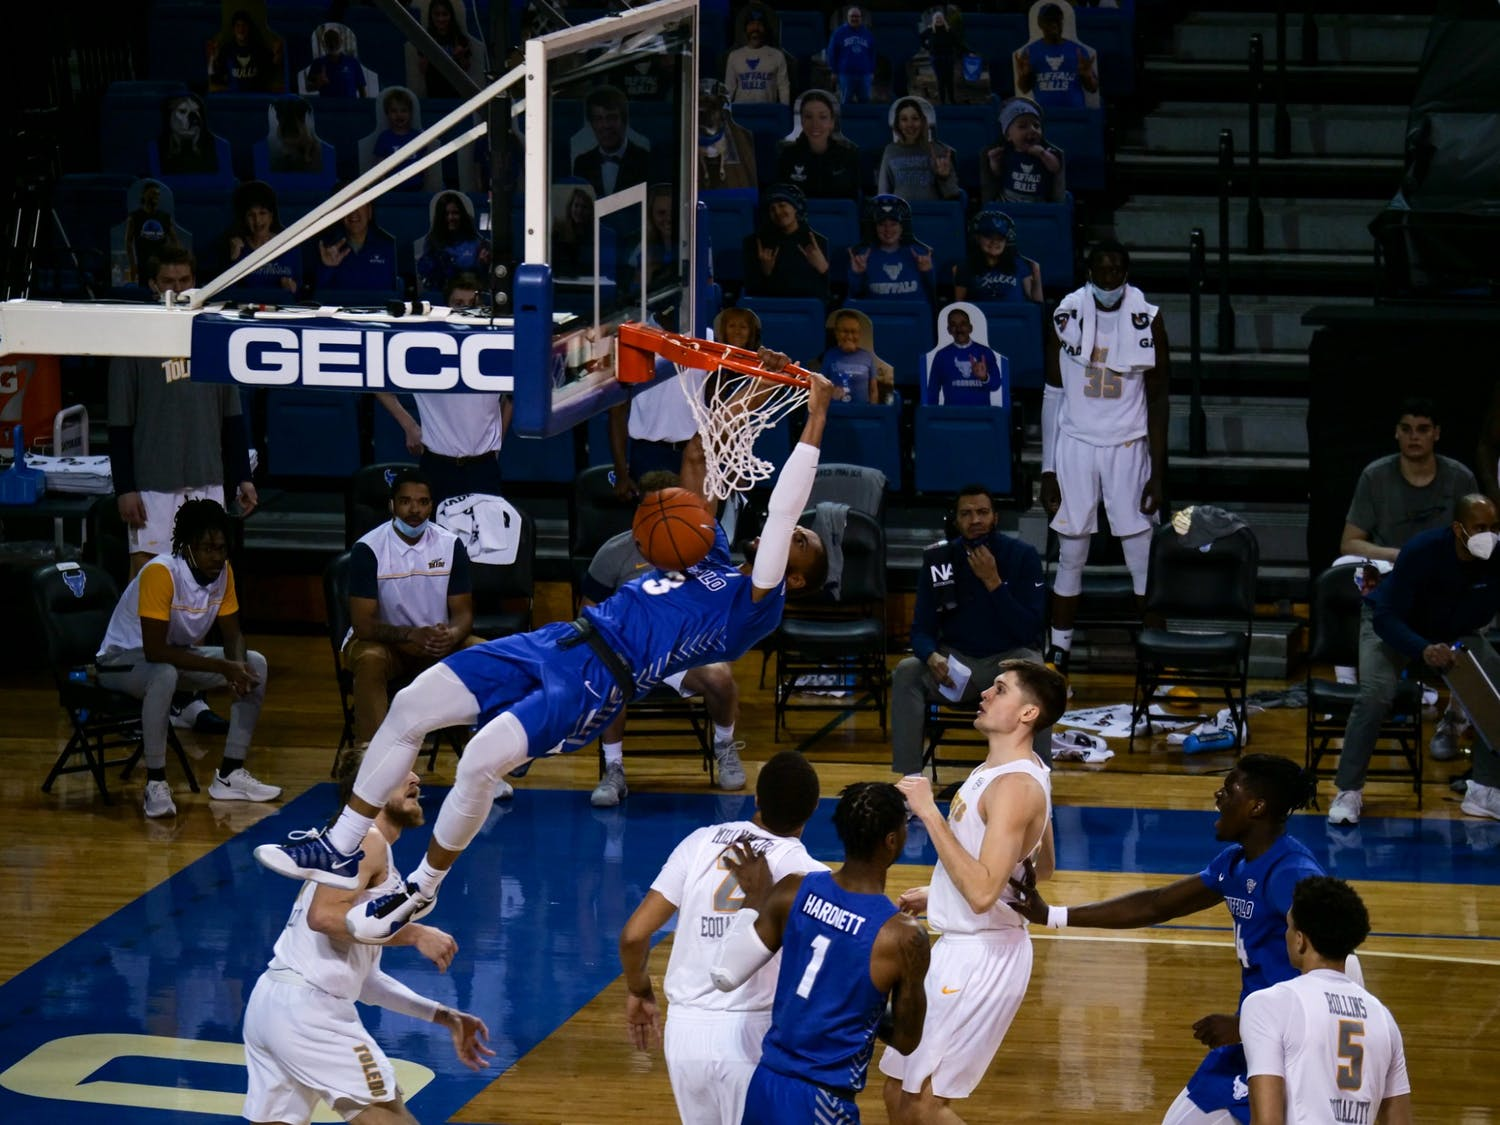 Senior guard Jayvon Graves had 17 points and nine rebounds in an 81-67 victory over Kent State Friday.